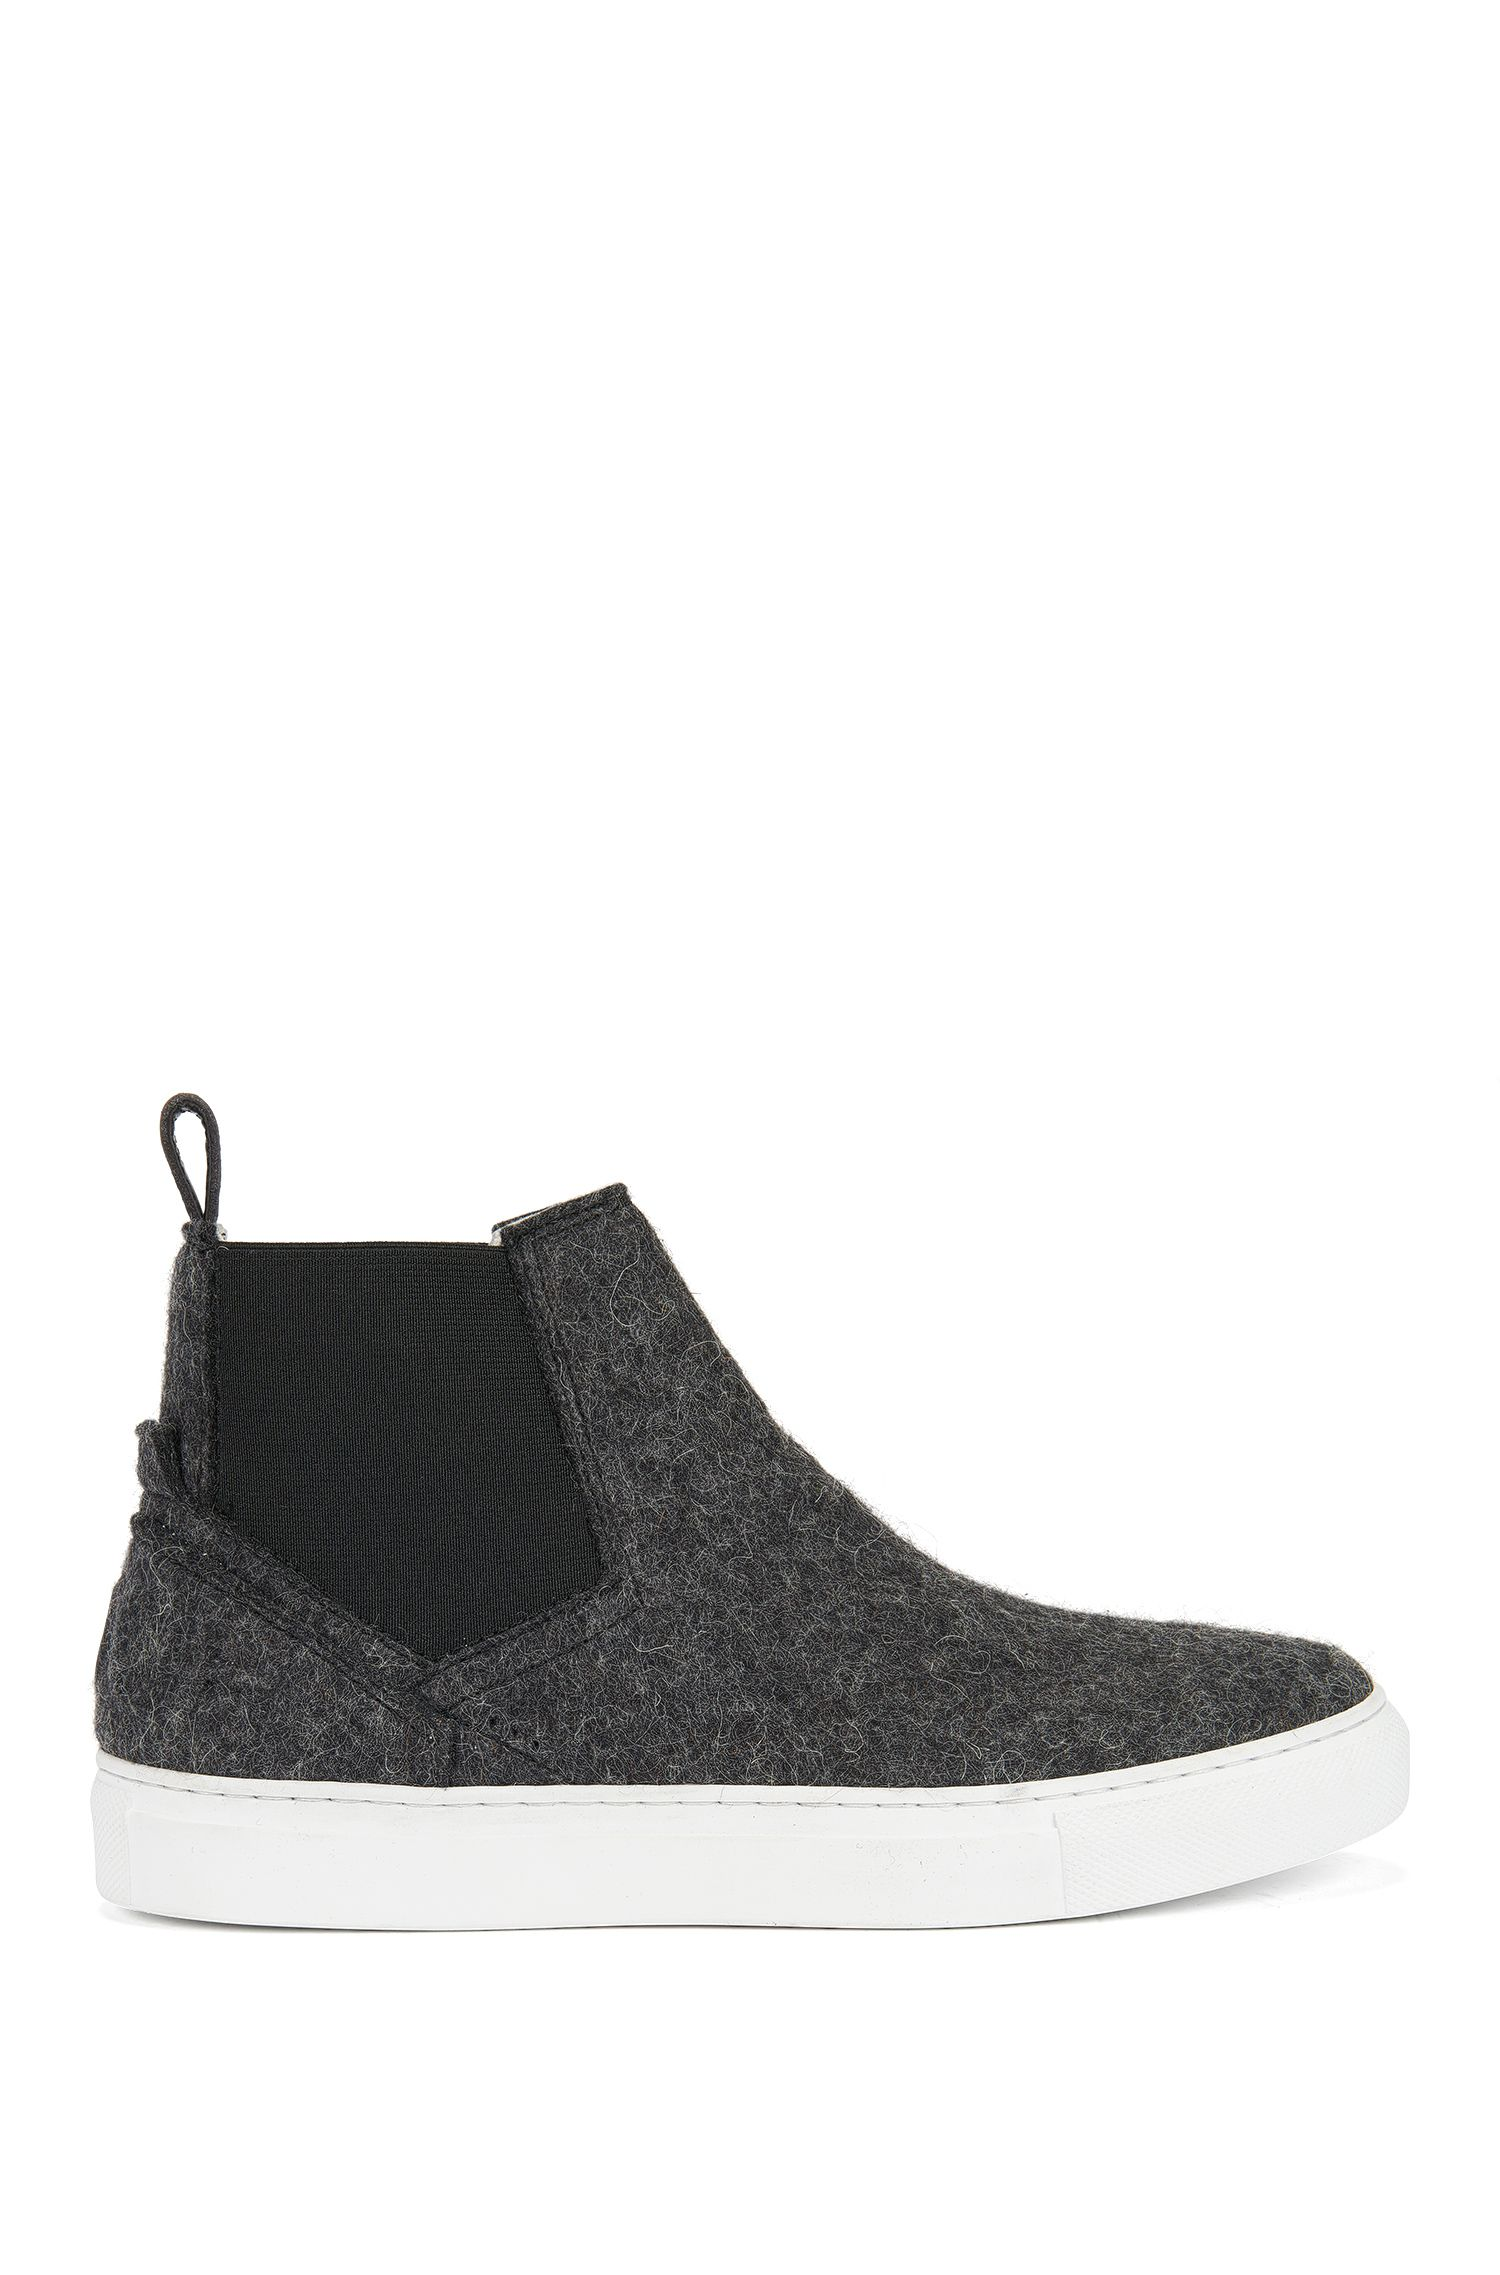 Wool Chelsea boots with elasticated panels